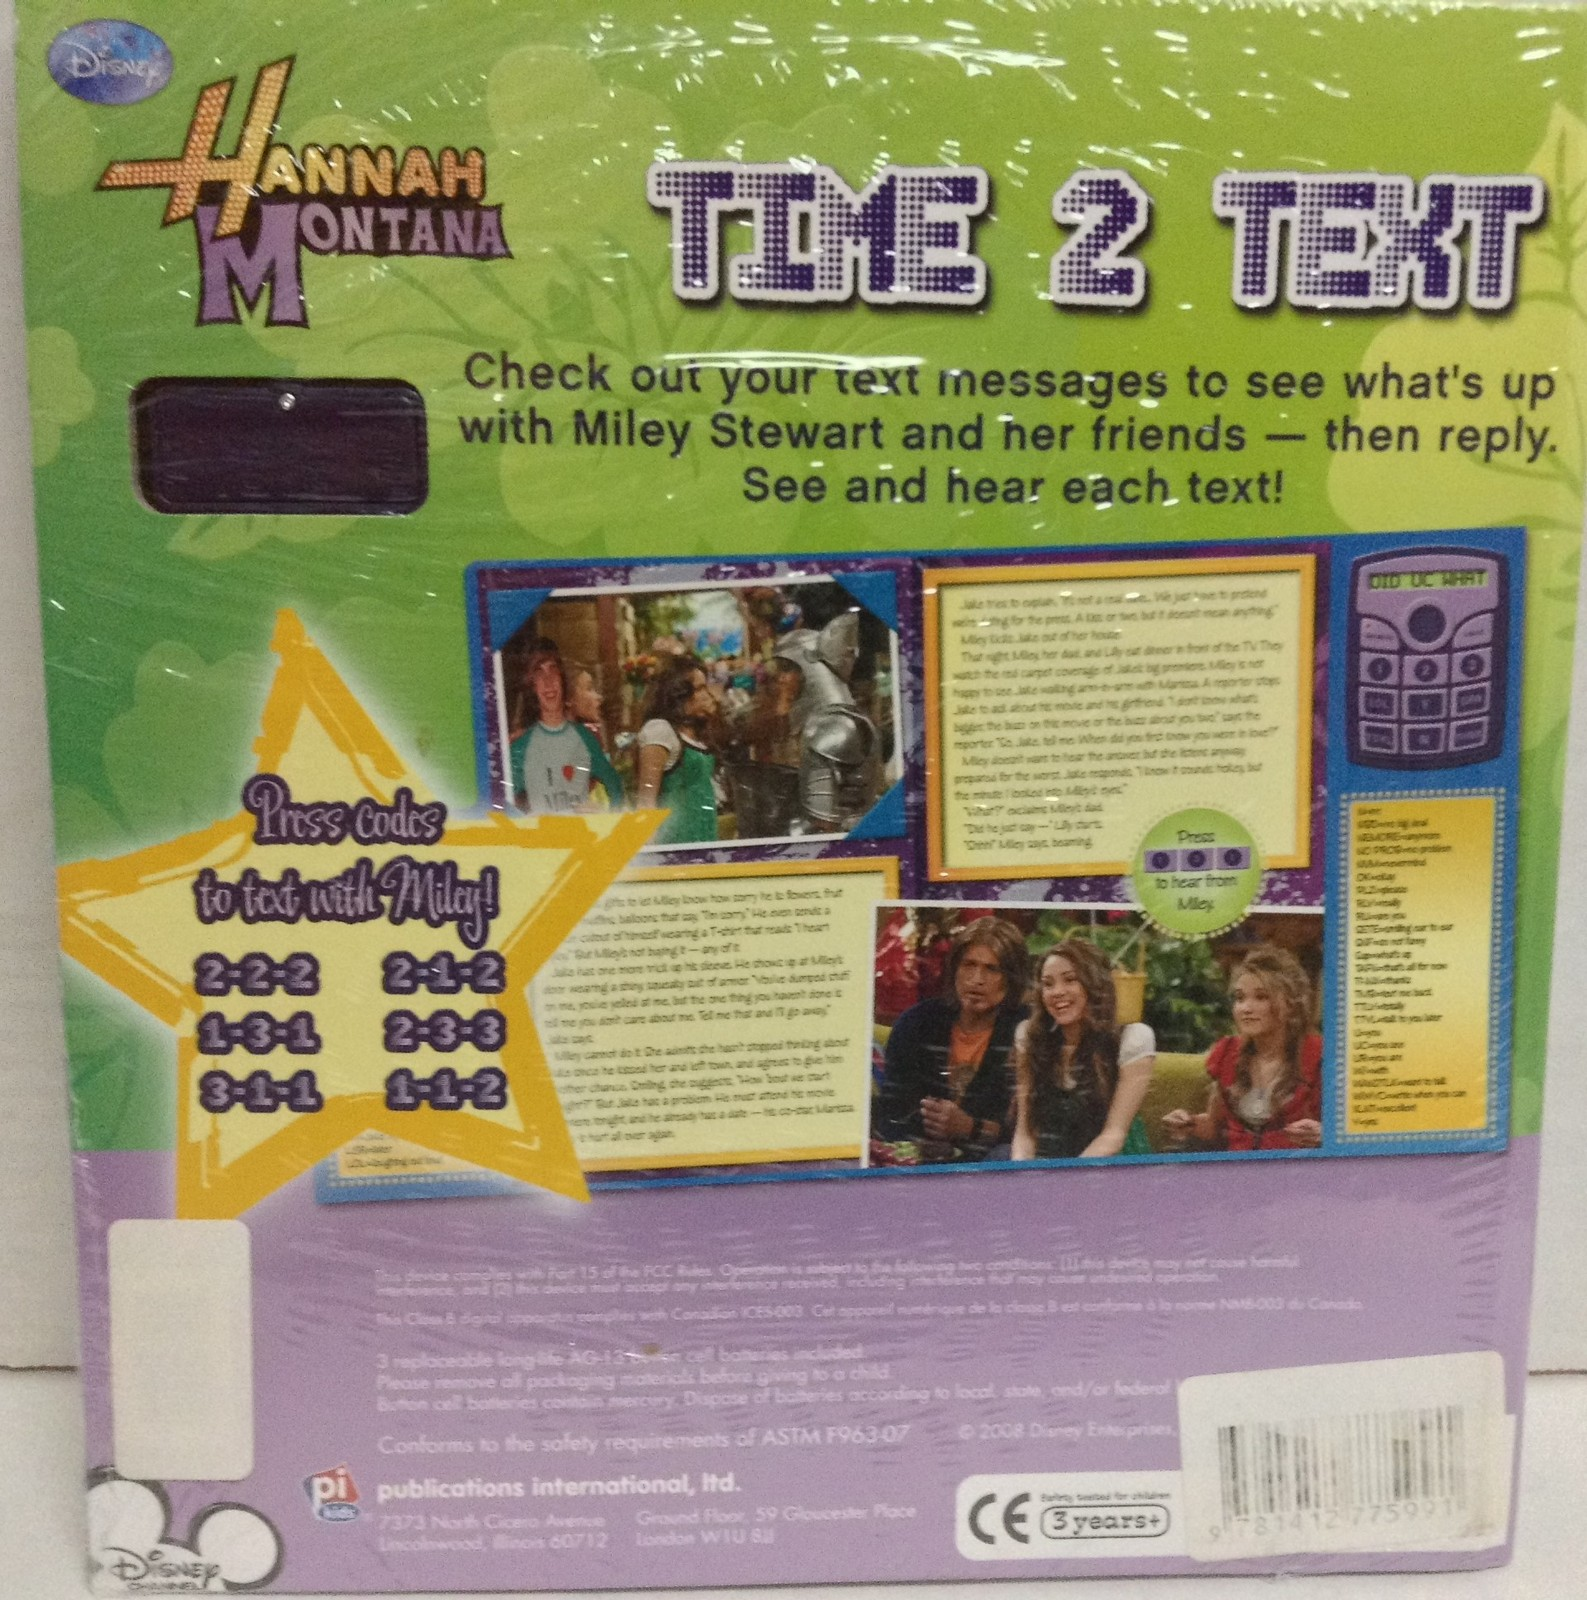 Hannah Montana Disney TIME 2 TEXT Miley NEW in Package